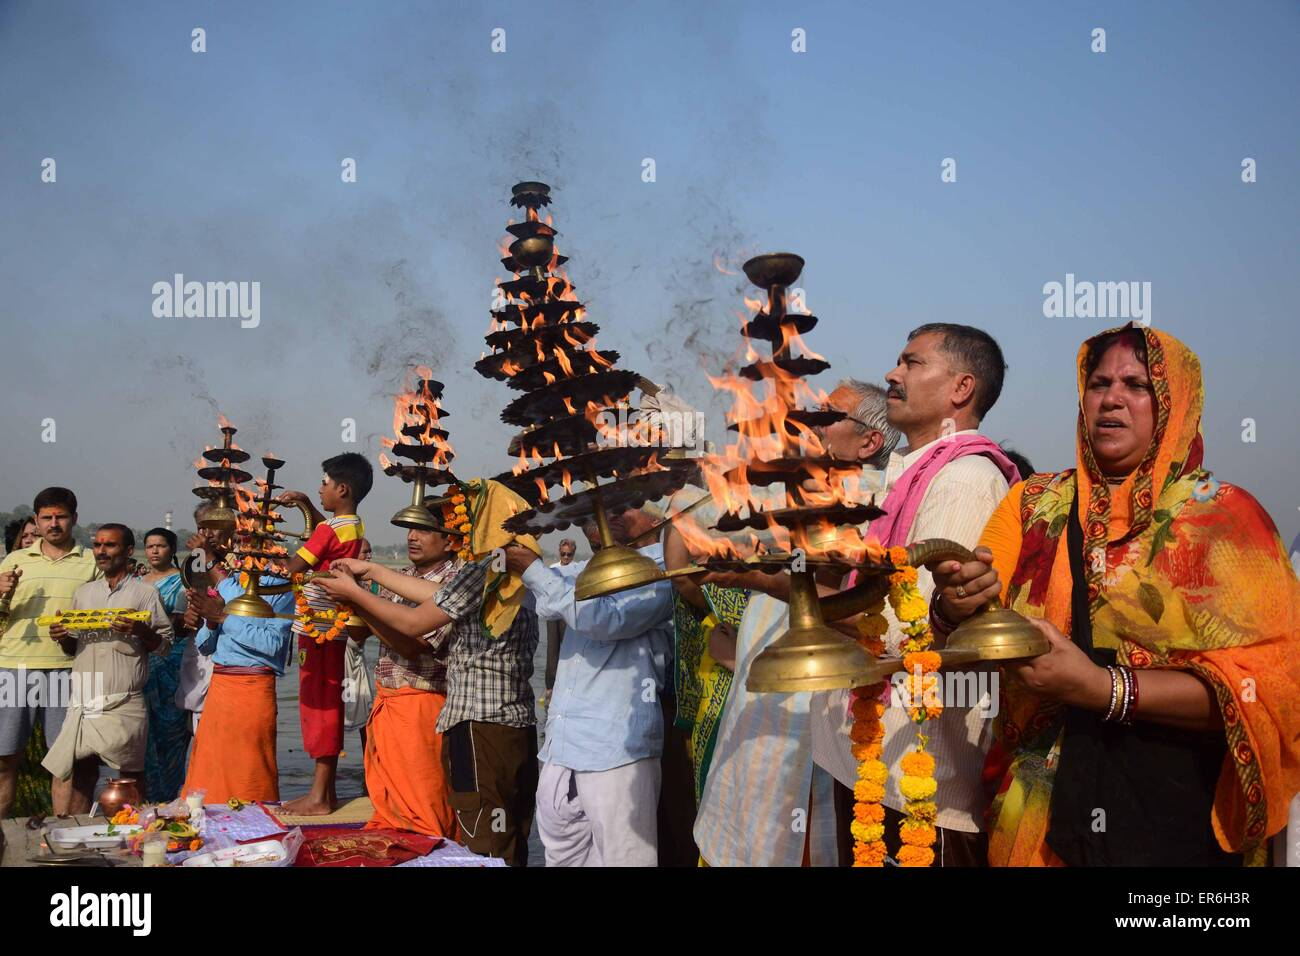 Allahabad, India. 27th May, 2015. A Hindu priest along with the devotees rotates a traditional lamp in circular - Stock Image